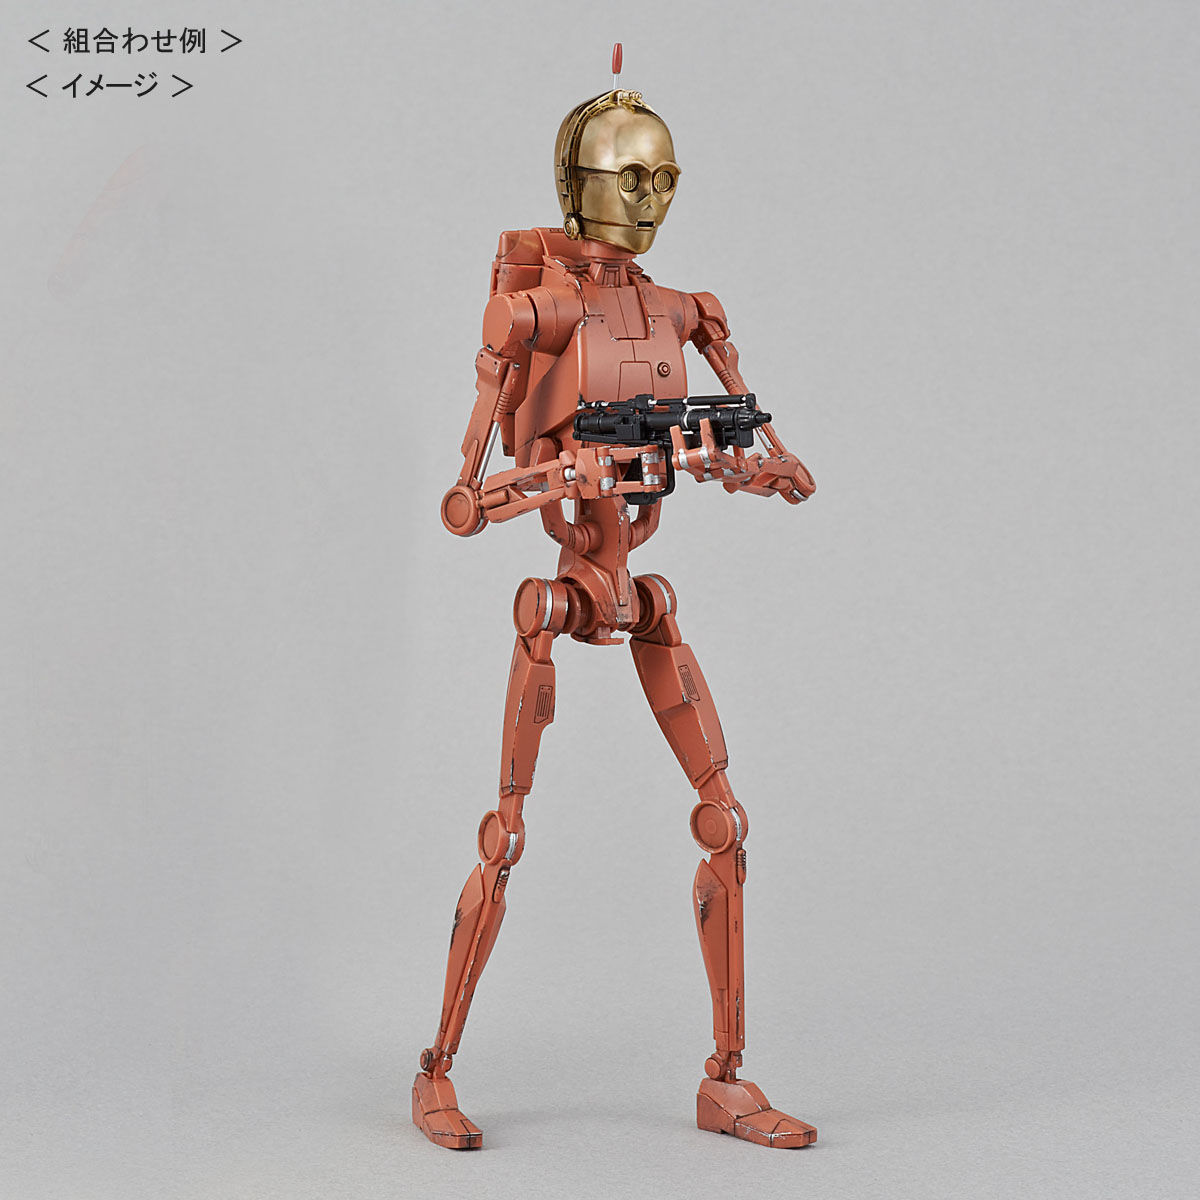 1/12 scale battle droid set - Geonosis Color